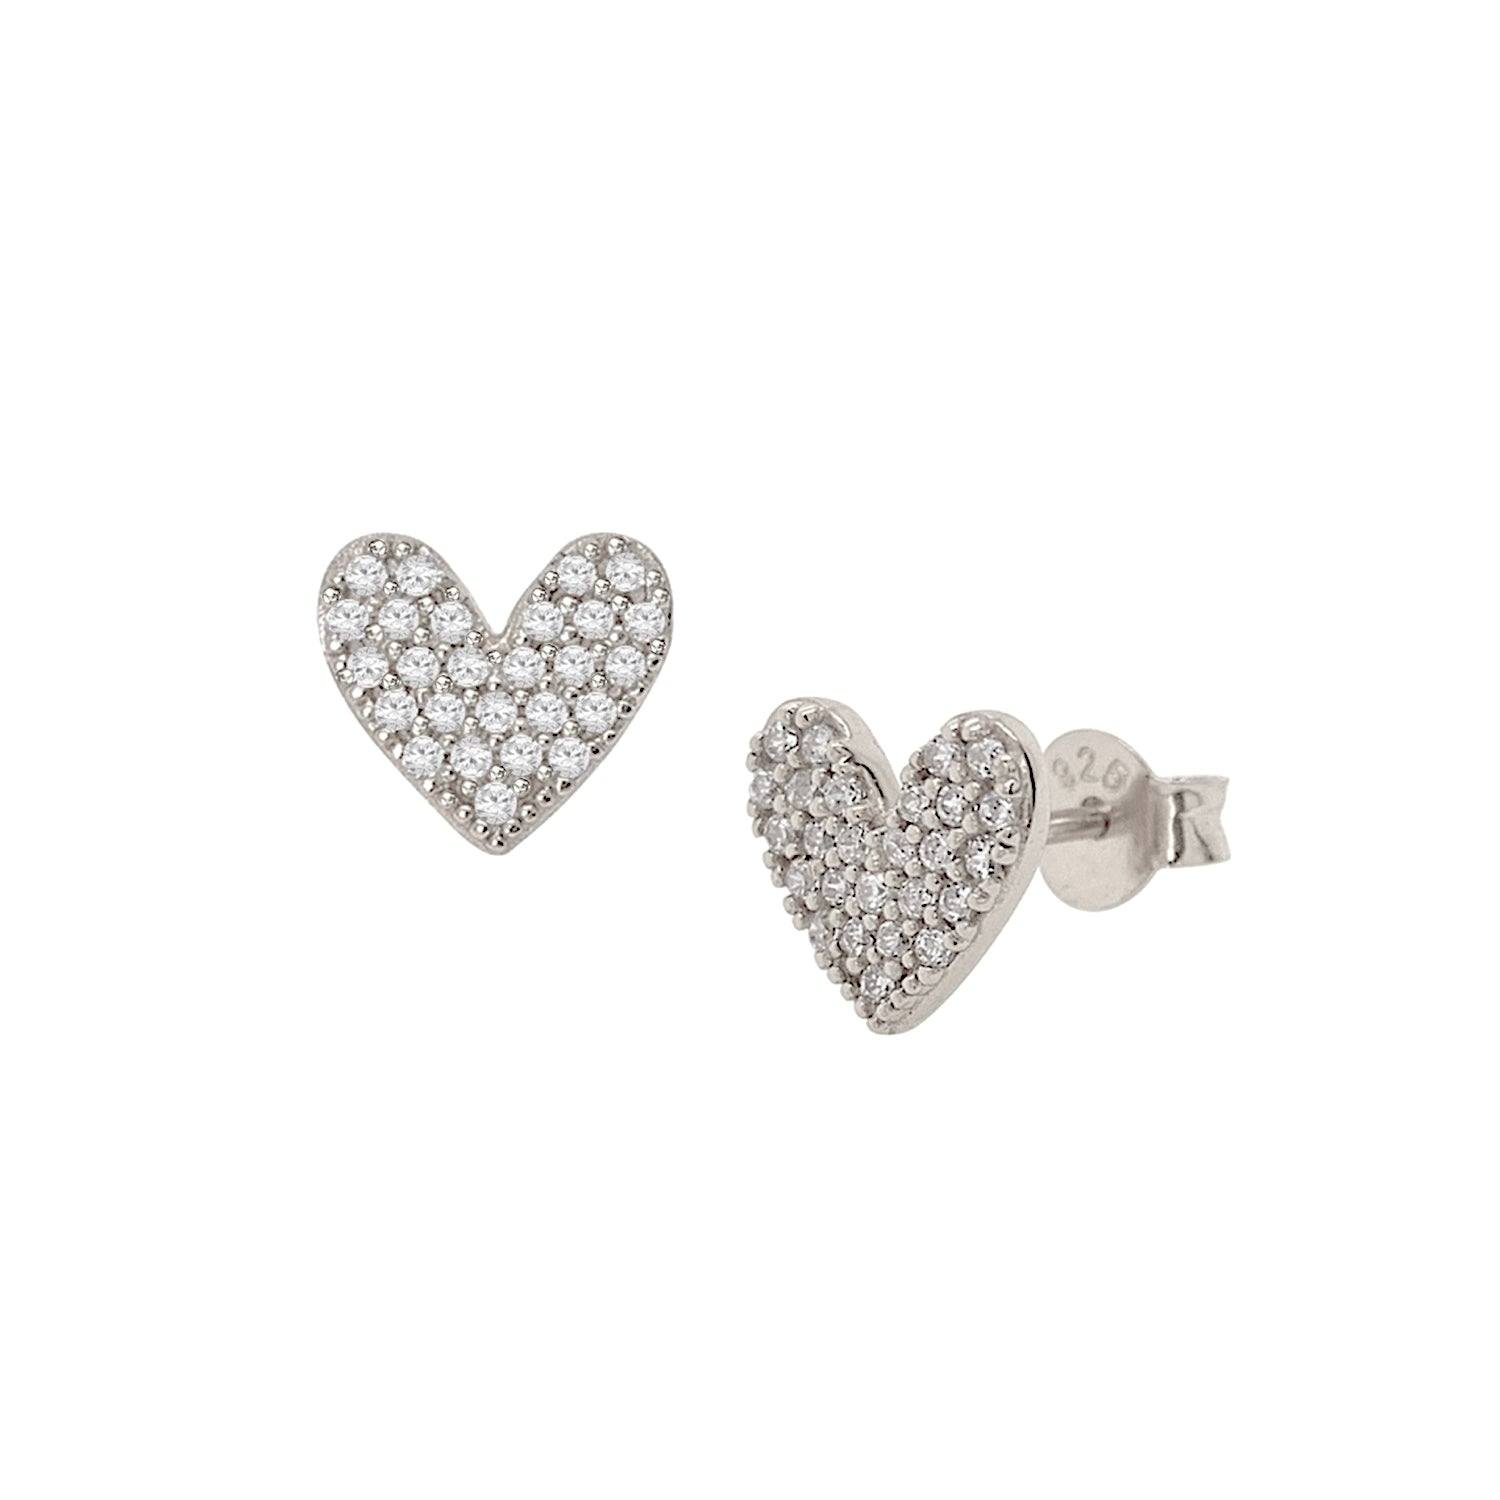 Luxe Pave Heart Stud Earrings